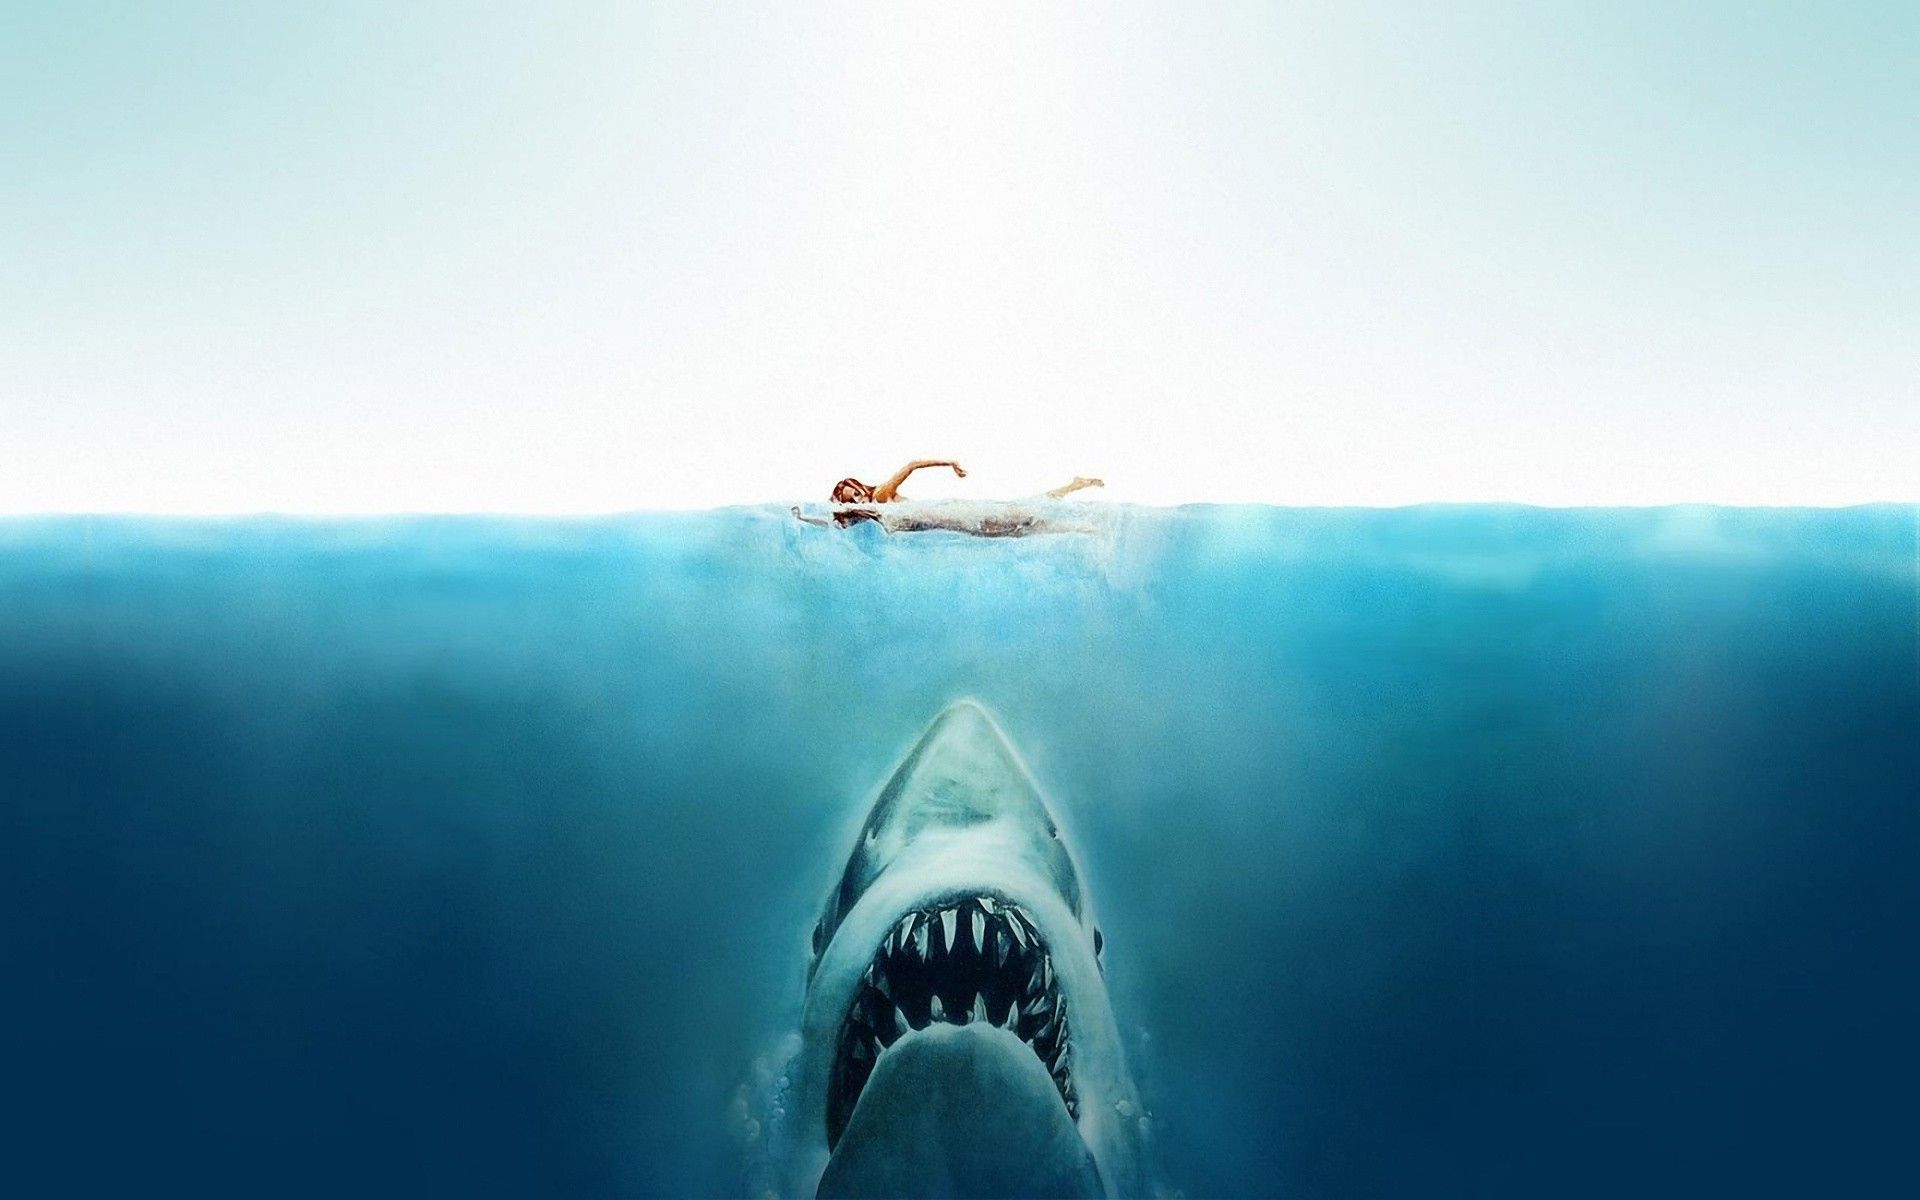 Download hd wallpapers of 248848 jaws movies shark split view jaws movies shark split view wallpapers hd desktop and mobile backgrounds voltagebd Images